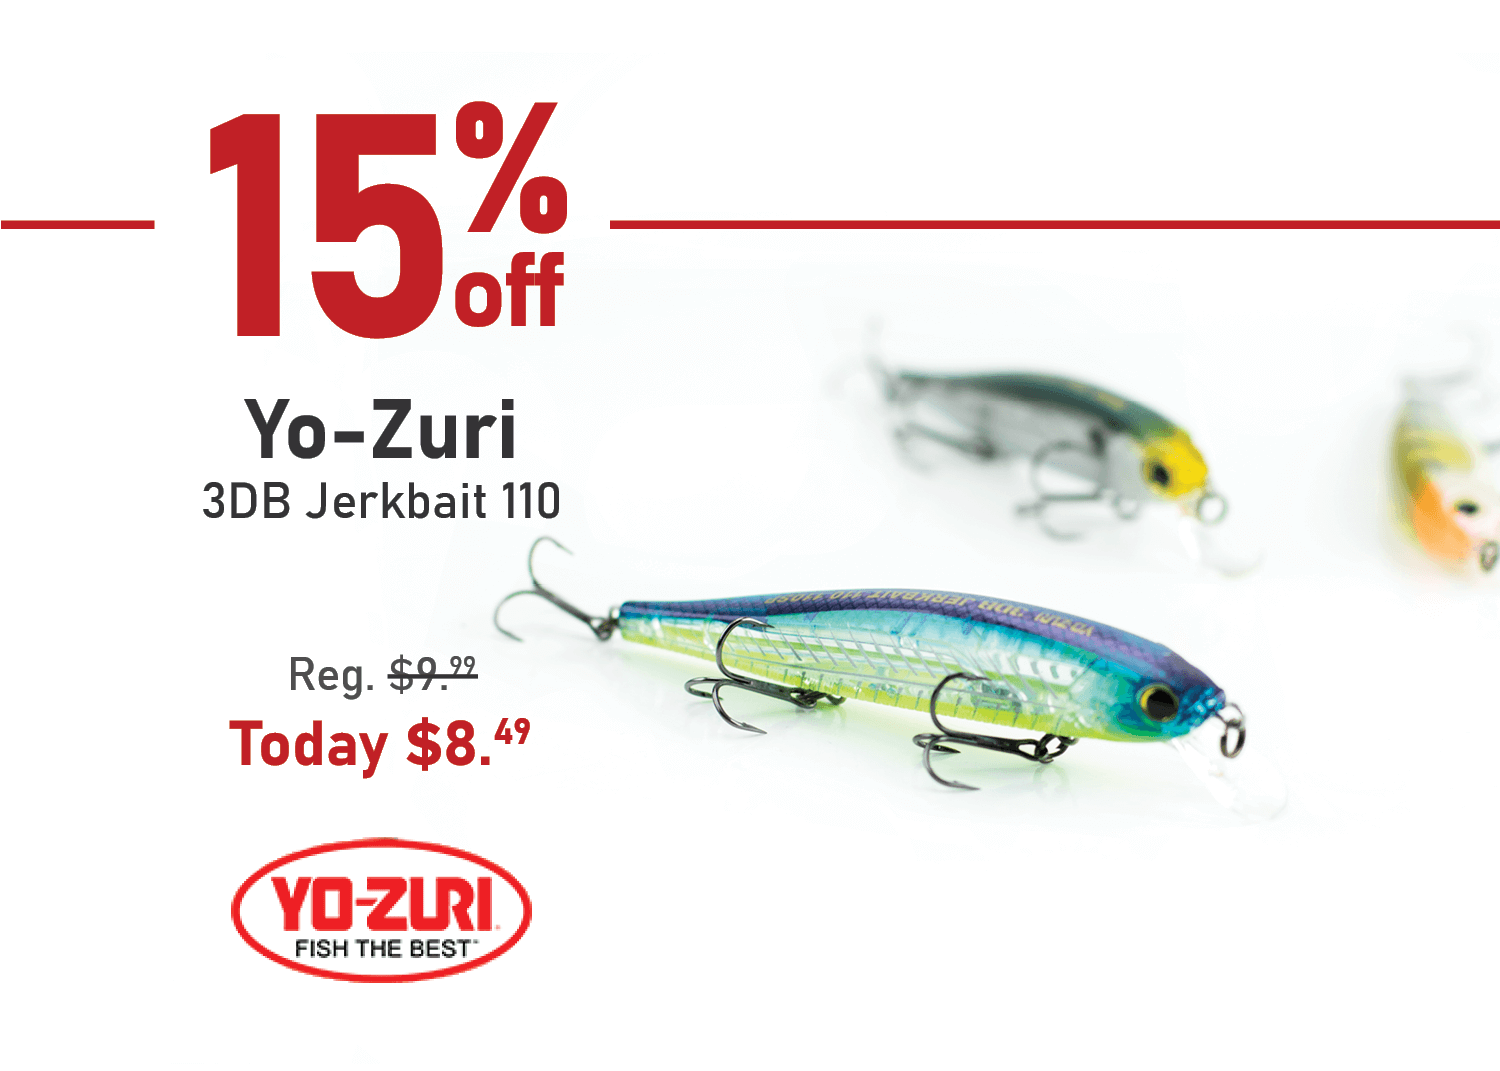 Take 15% off the Yo-Zuri 3DB Jerkbait 110